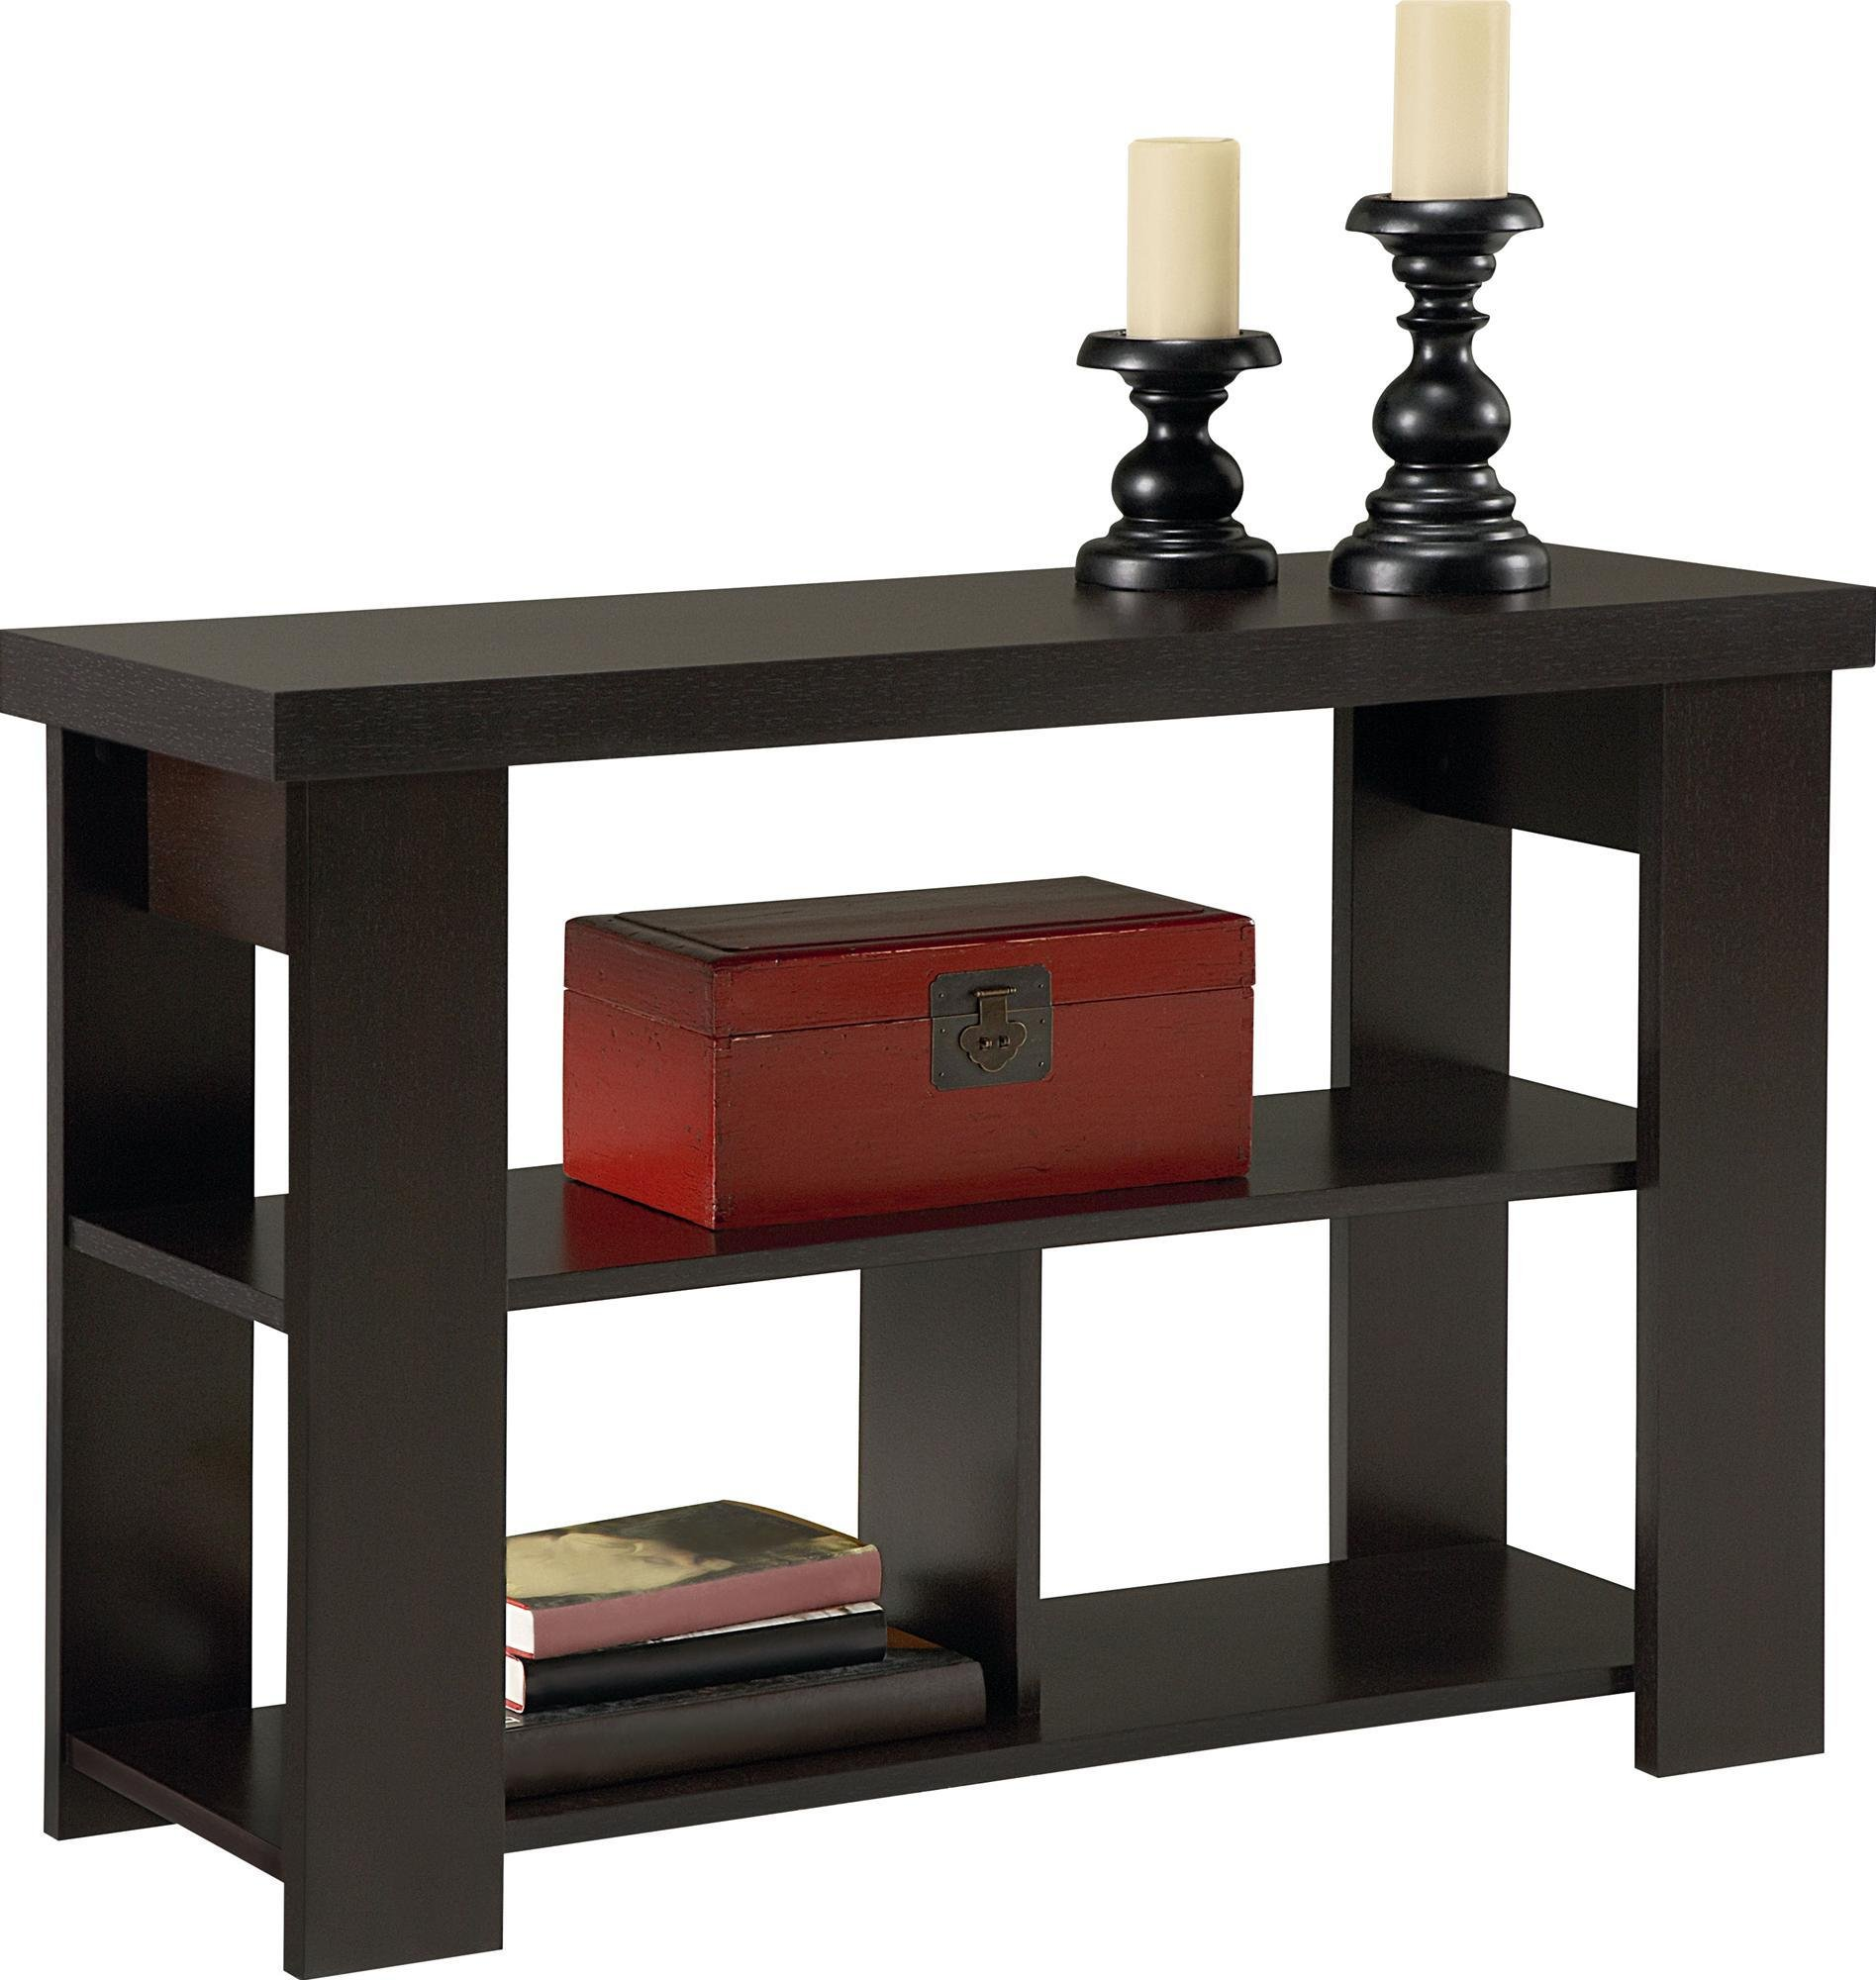 Ameriwood Home Jensen Console Table, Espresso